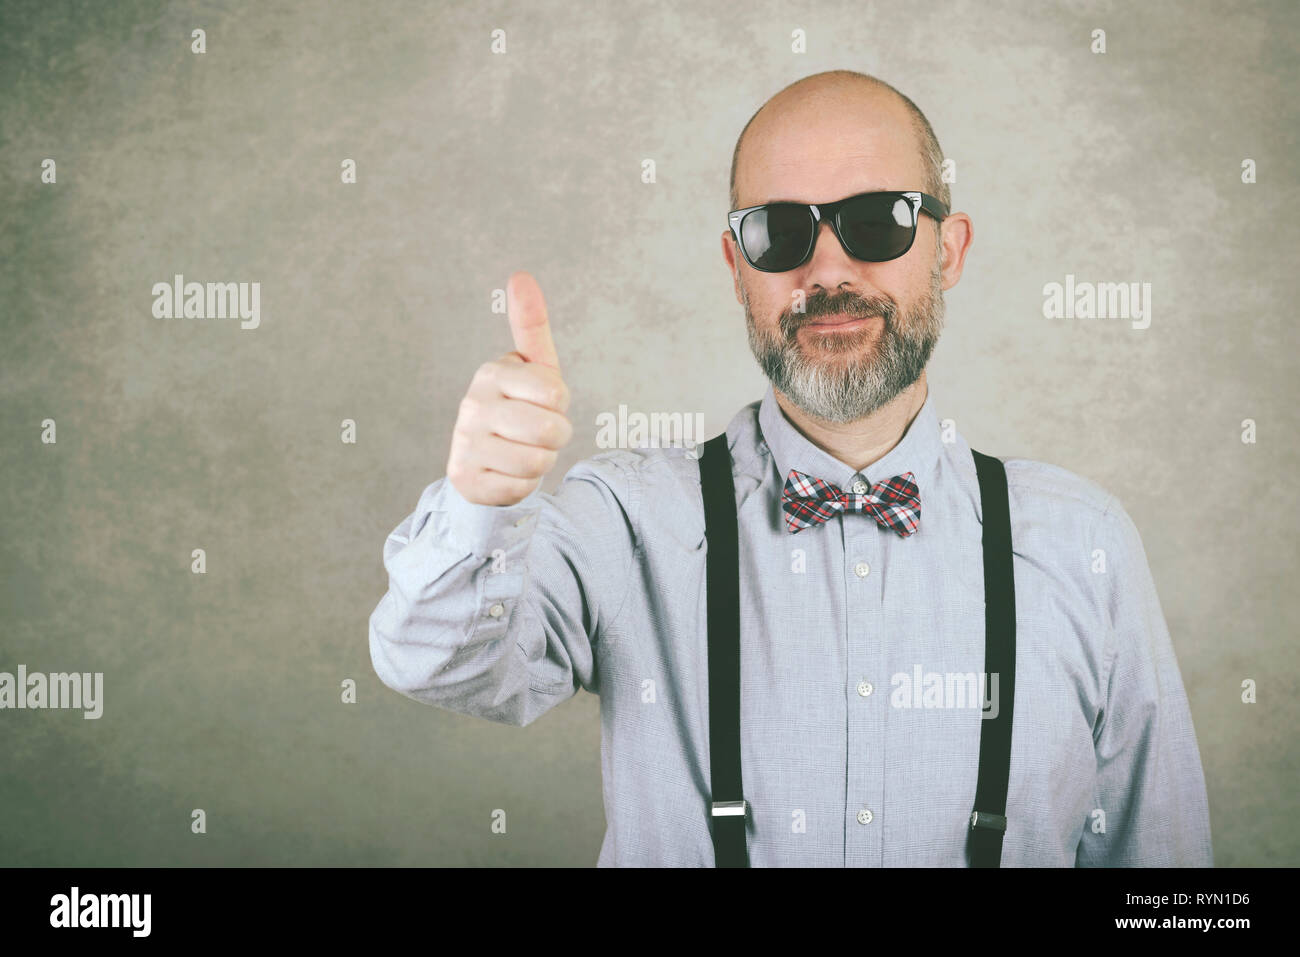 happy man with sunglasses and bow tie showing thumbs up against gray background - Stock Image